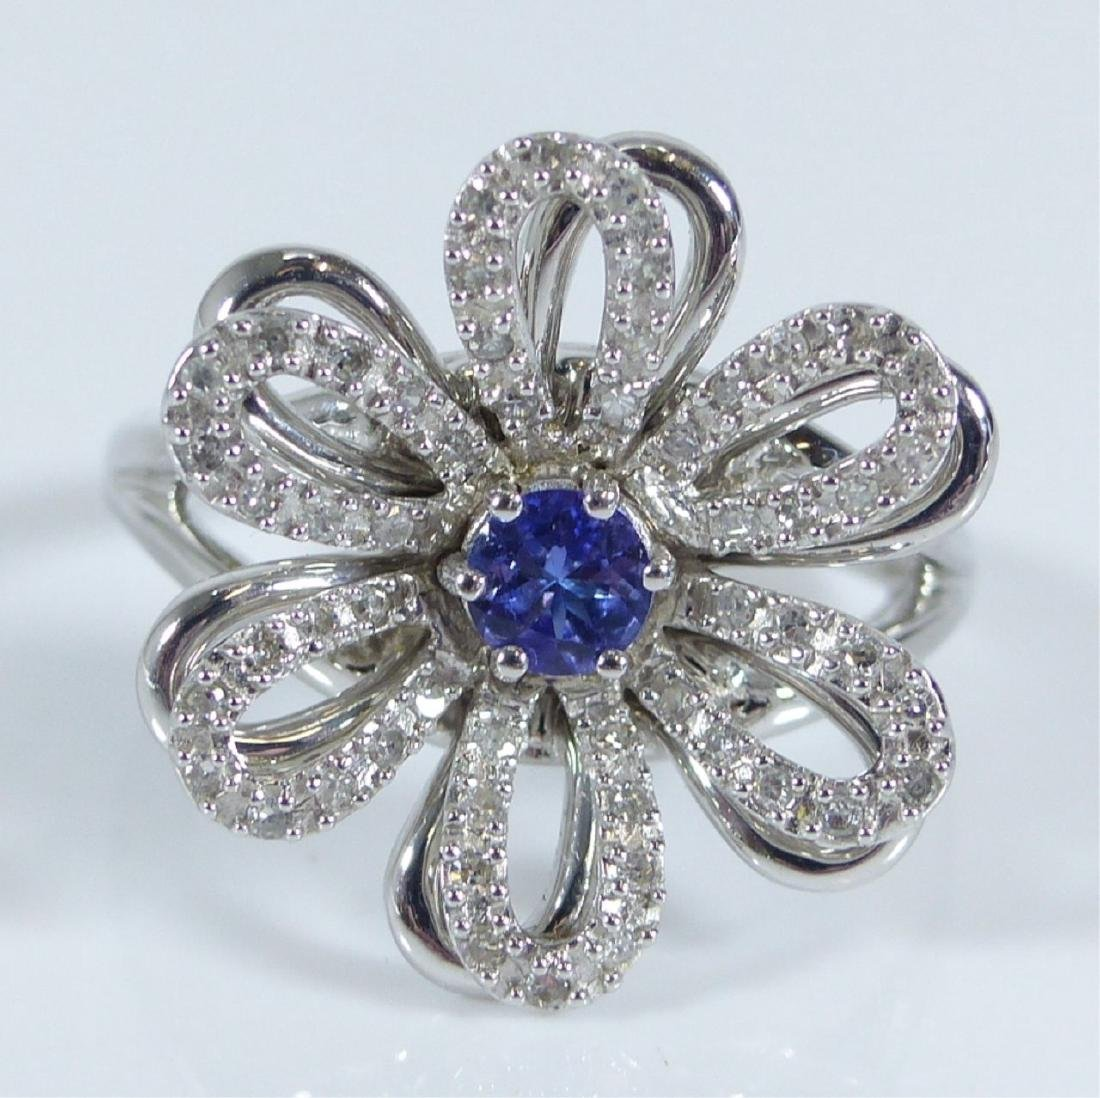 14kt WHITE GOLD TANZANITE & DIAMOND FLOWER RING - 9